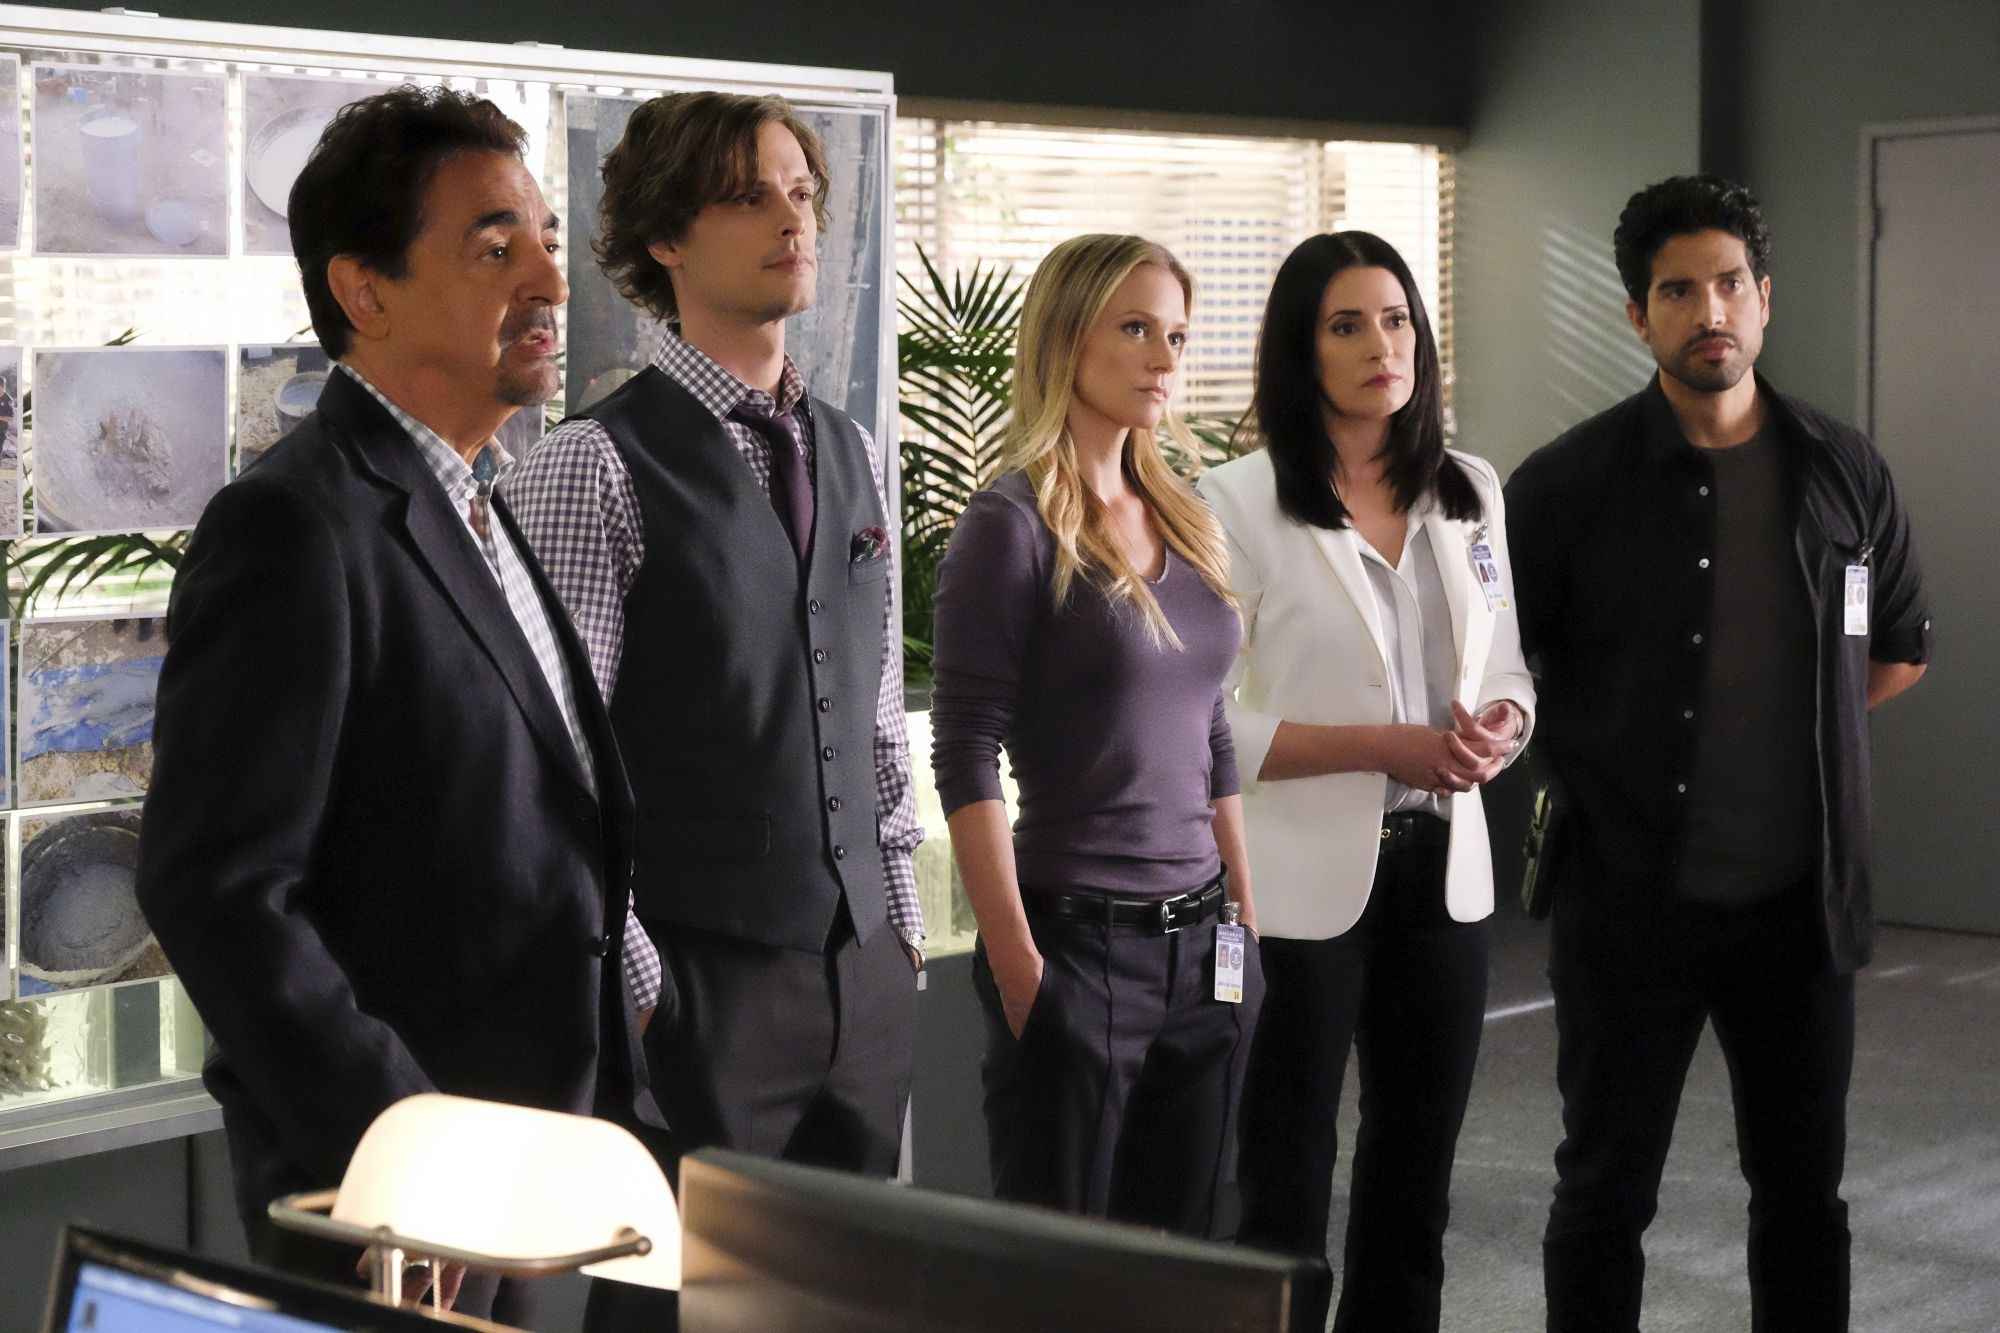 Criminal Minds' 15th Season Will Be Its Last